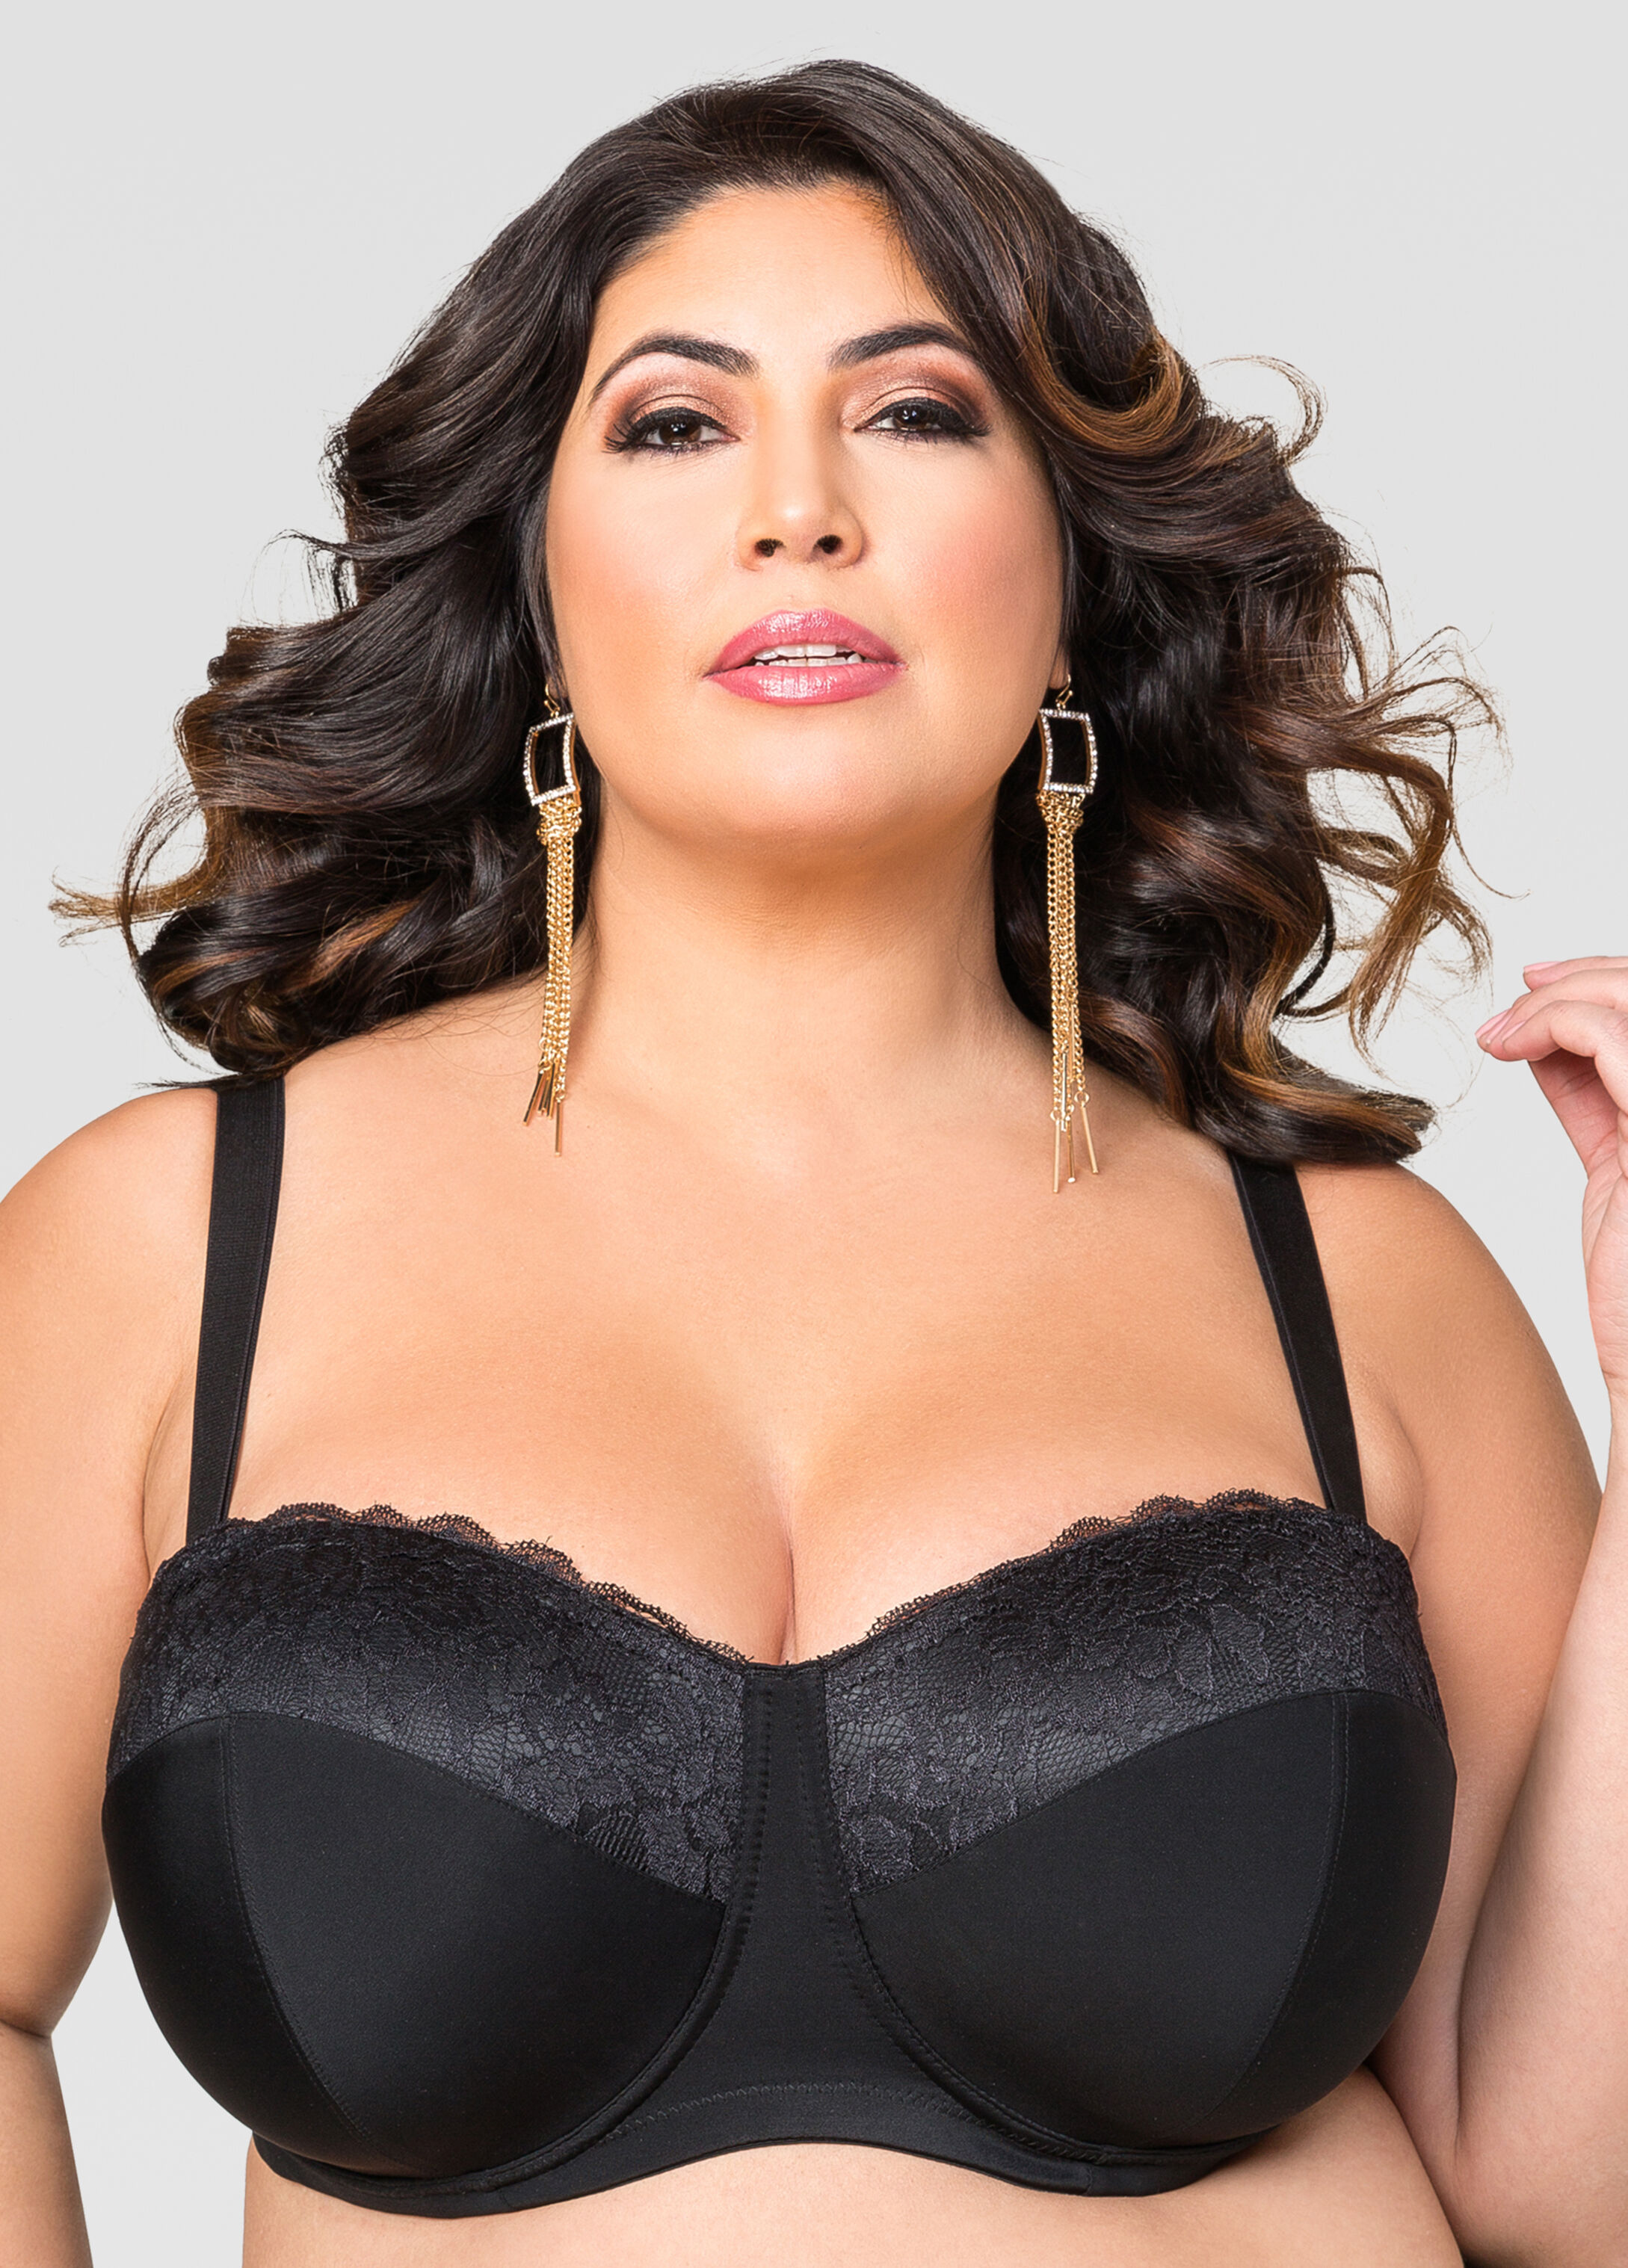 Plus Size Convertible Butterfly Bra - F,G,H Cups 054-AS-2576